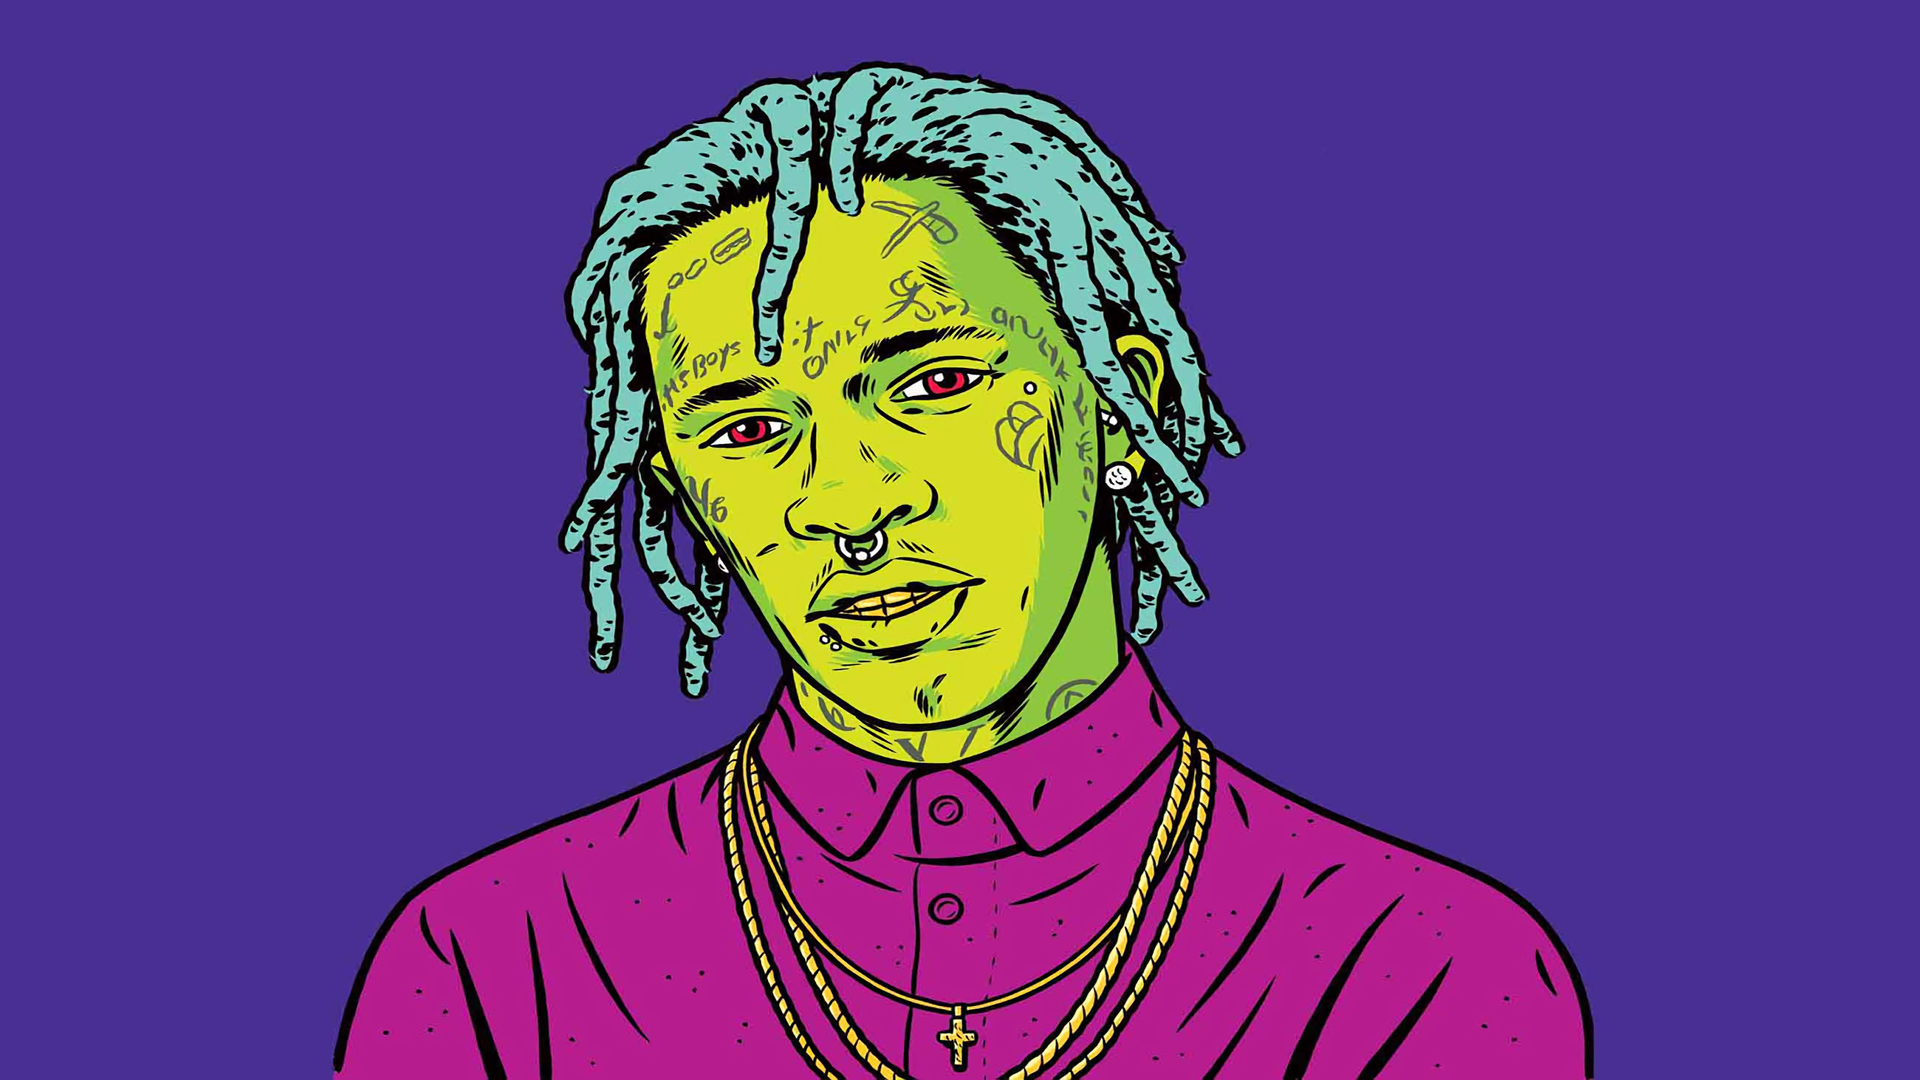 5 Young Thug Hd Wallpapers Background Images Wallpaper Abyss